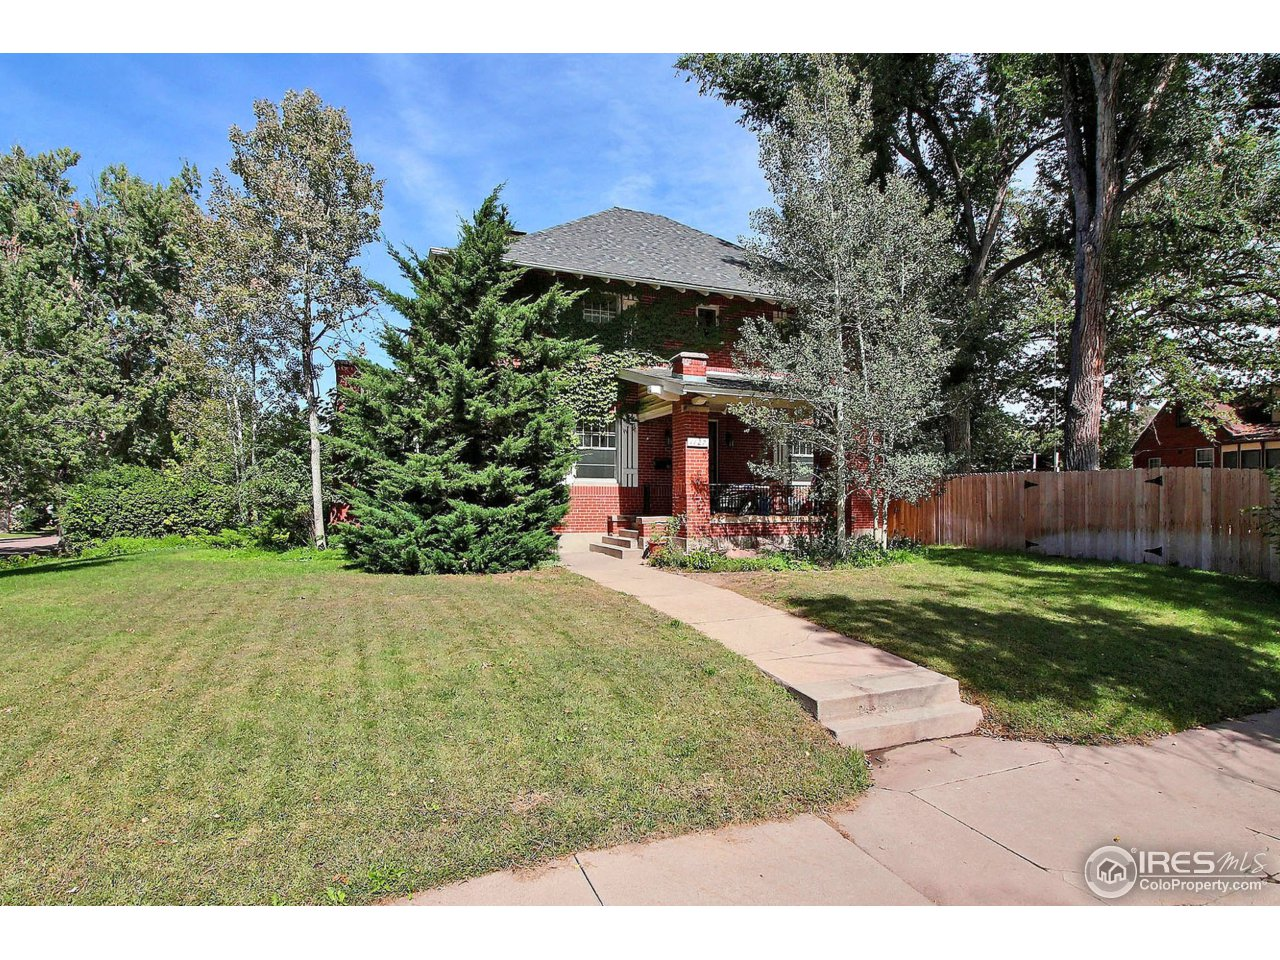 1127 18 St, Greeley CO 80631